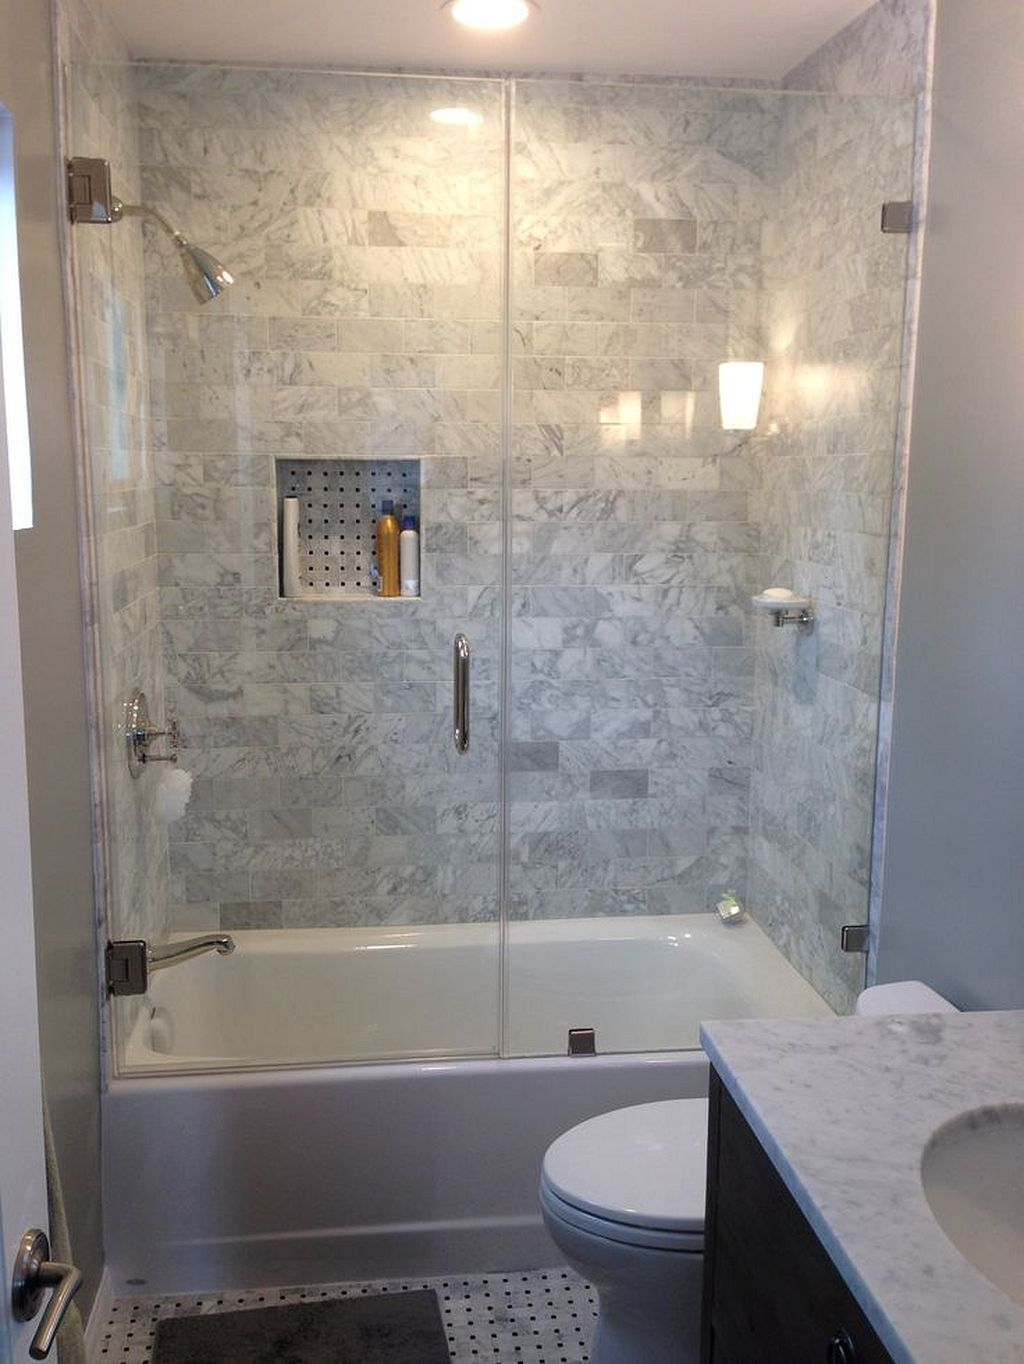 Tiny Bathroom Tub Shower Combo Remodeling Ideas 65 Small Bathroom With Shower Bathroom Design Small Bathroom Tub Shower Combo